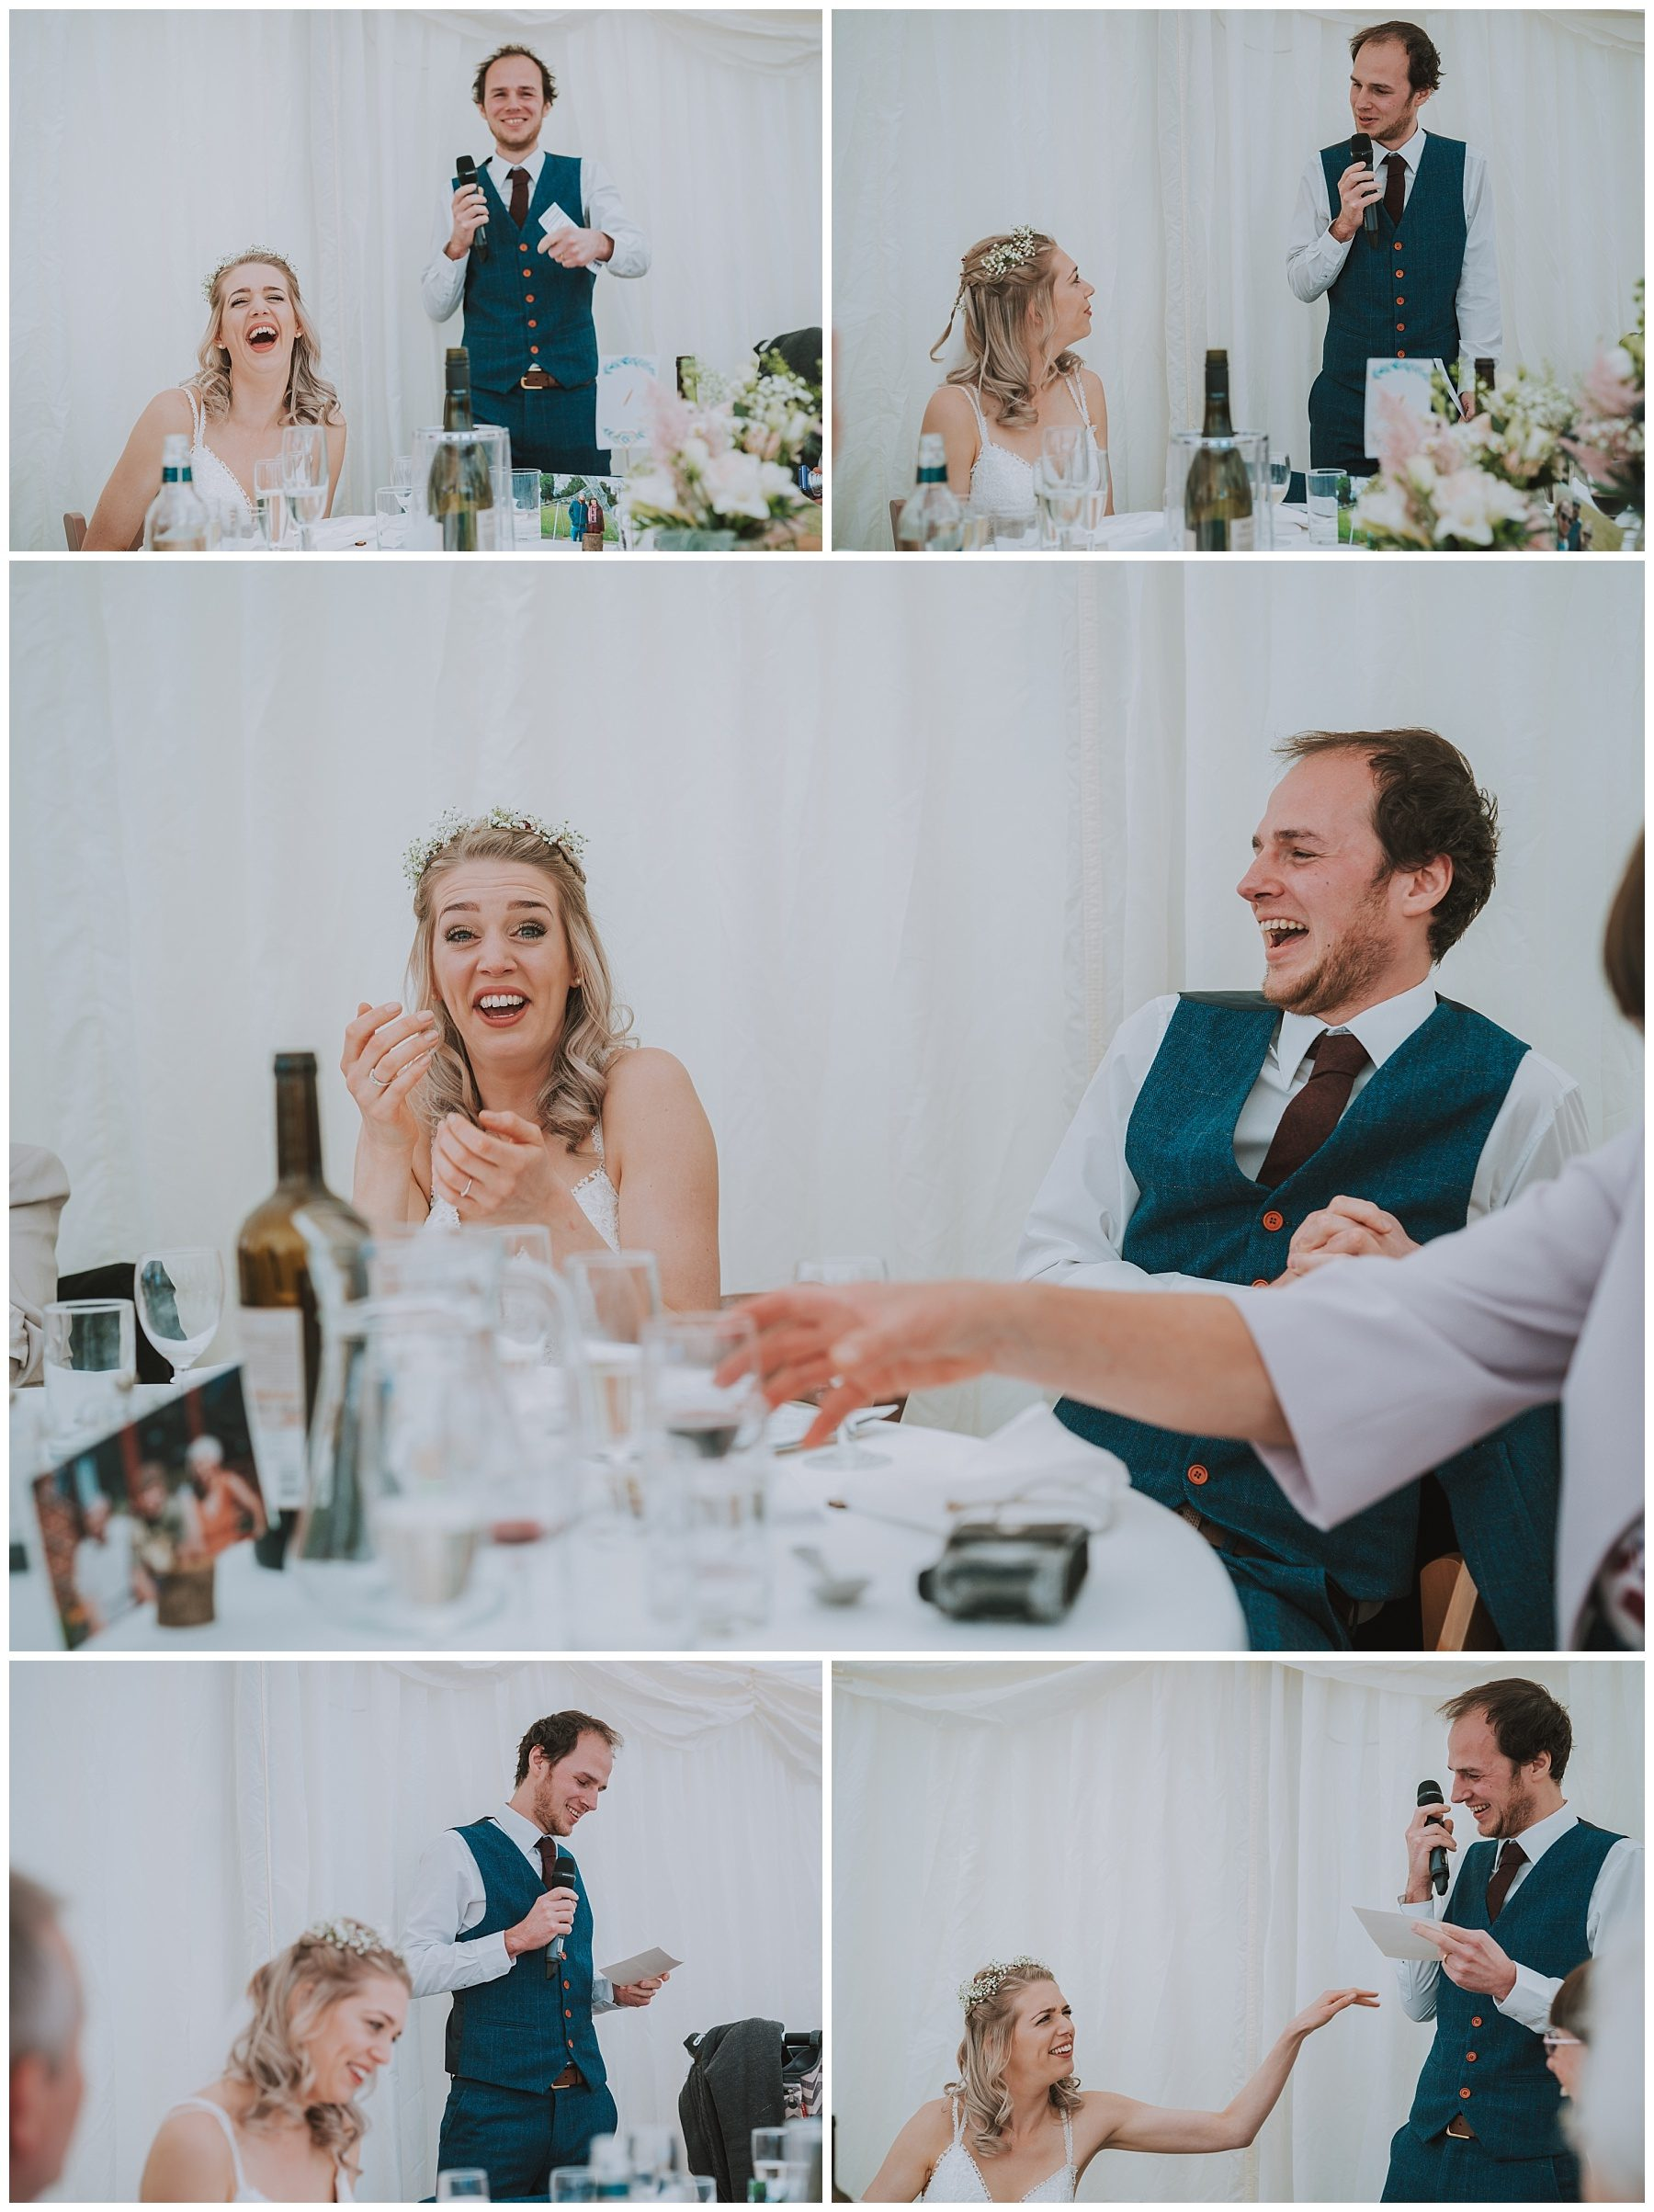 Ta mill marquee wedding speech cornwall photographer